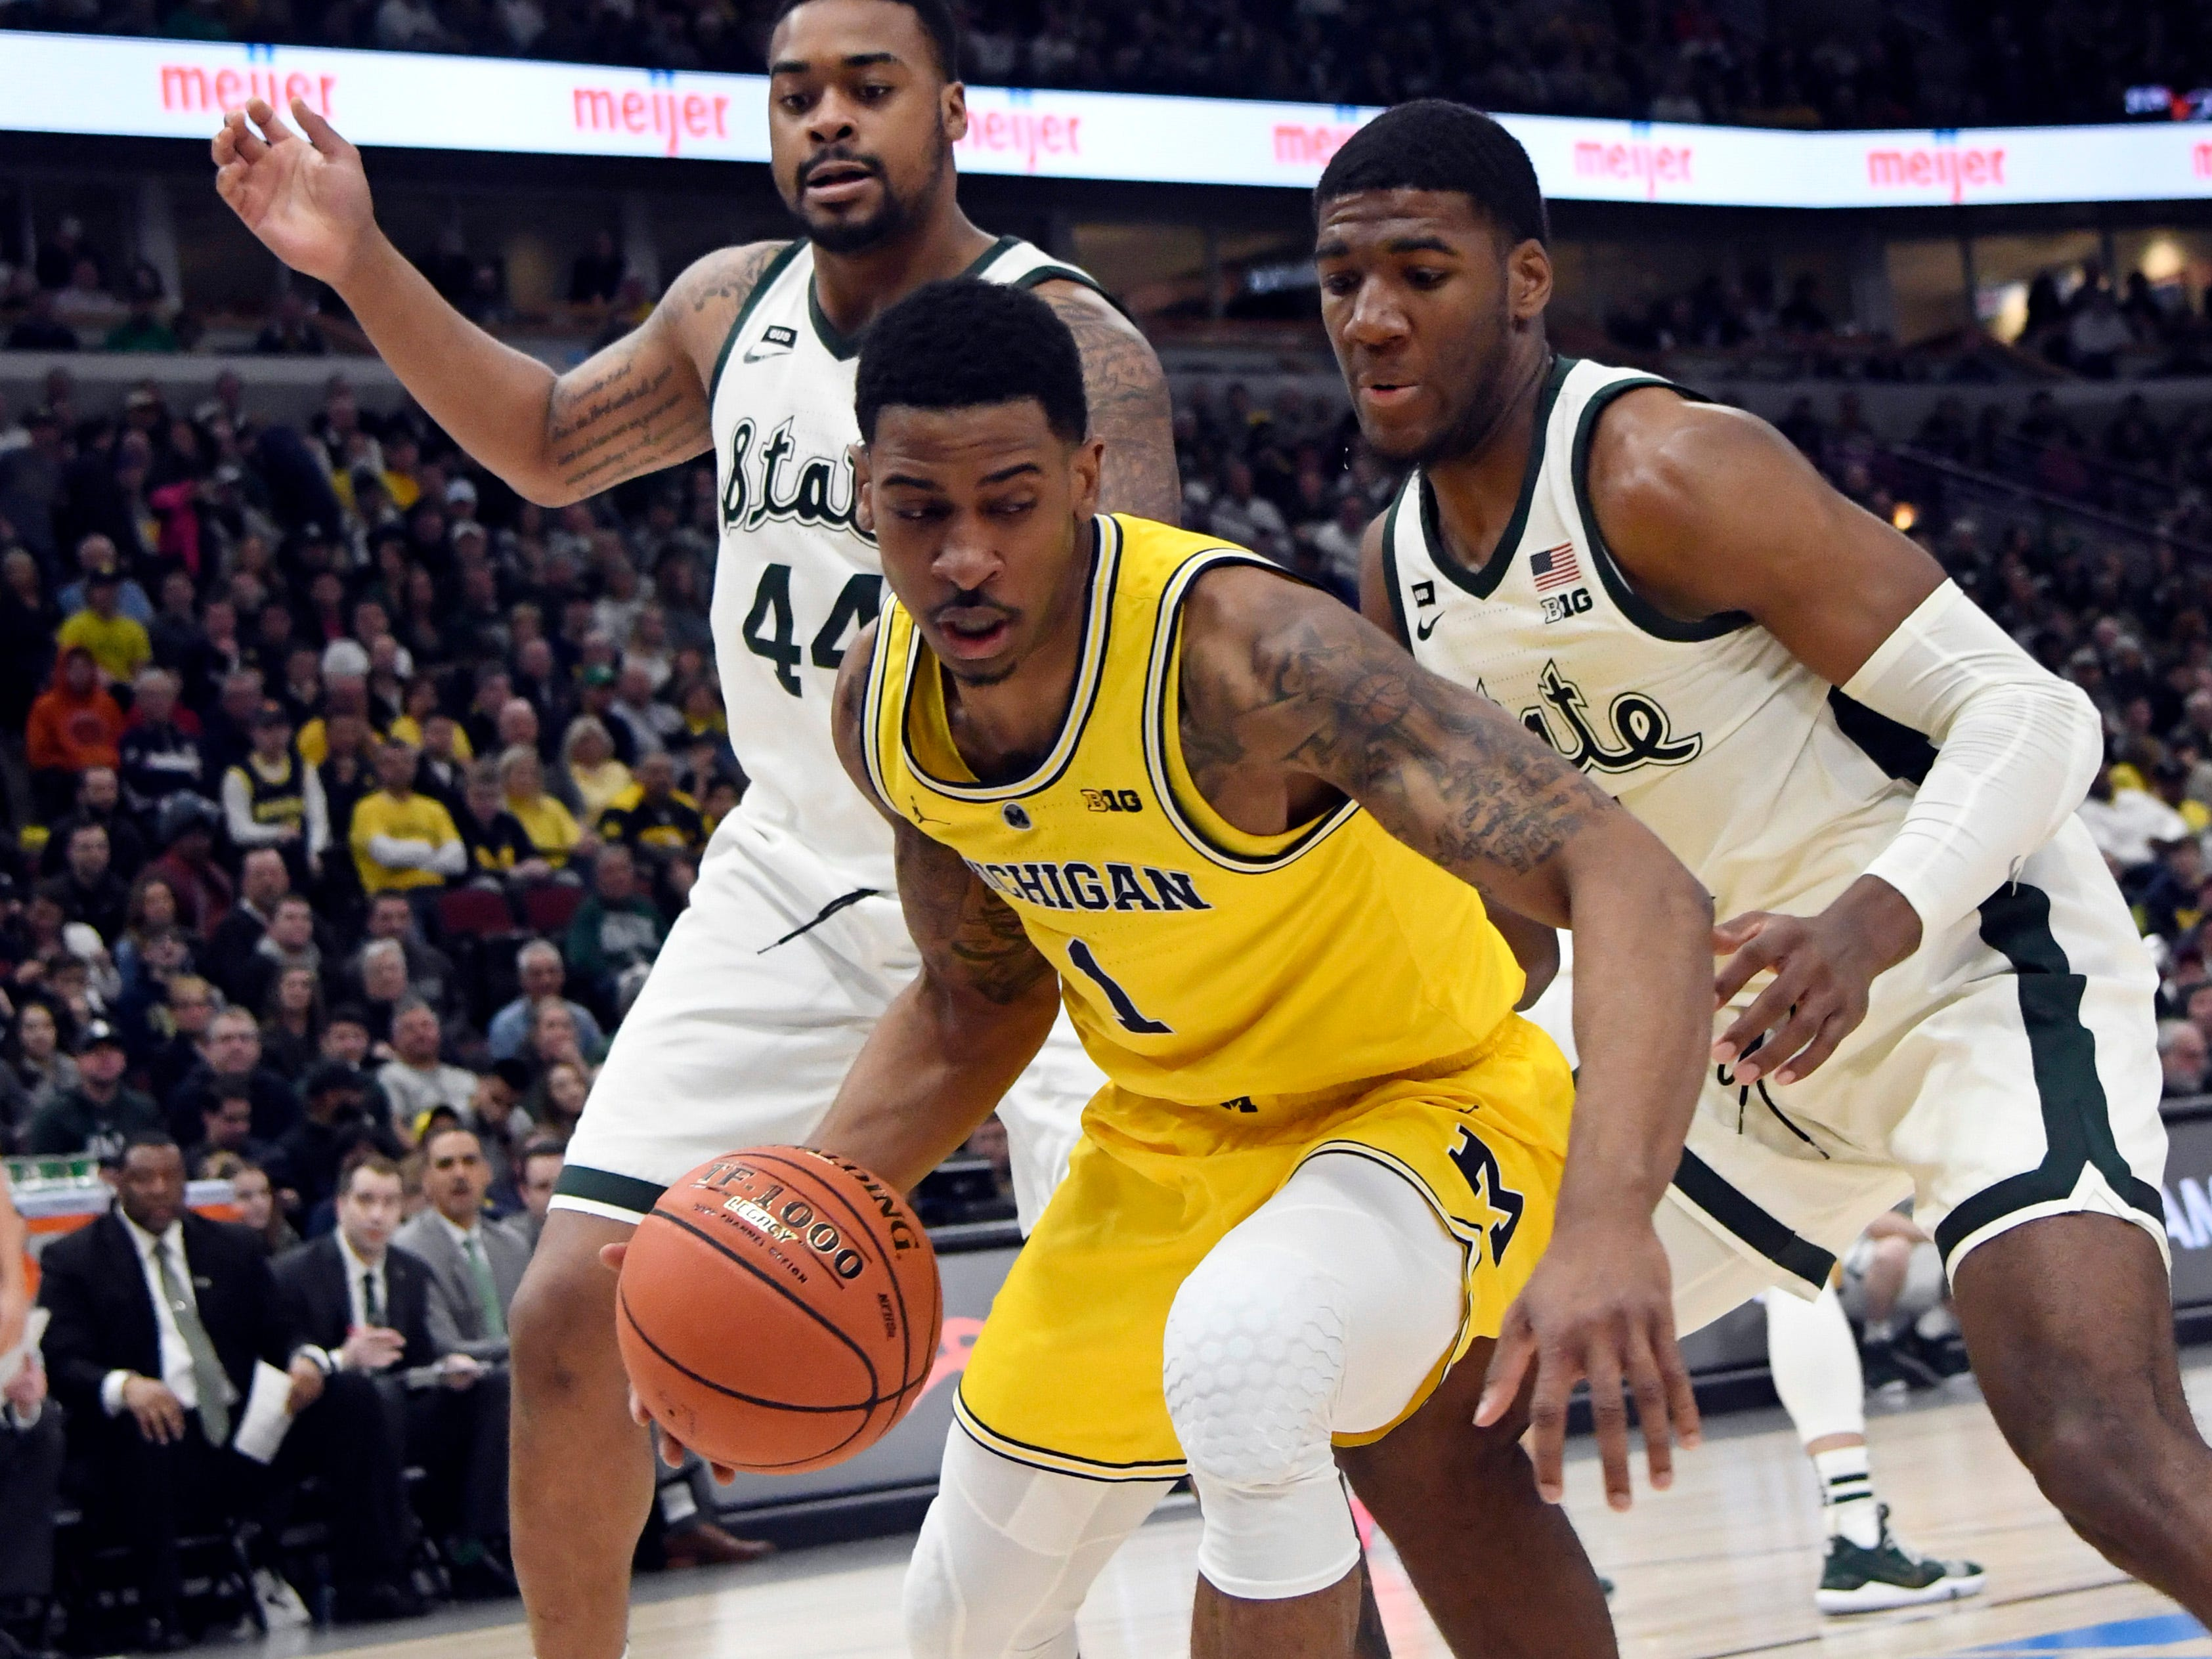 Michigan Wolverines guard Charles Matthews (1) is defended by Michigan State Spartans forward Nick Ward (44) and forward Aaron Henry (11) during the first half in the Big Ten conference tournament at United Center.